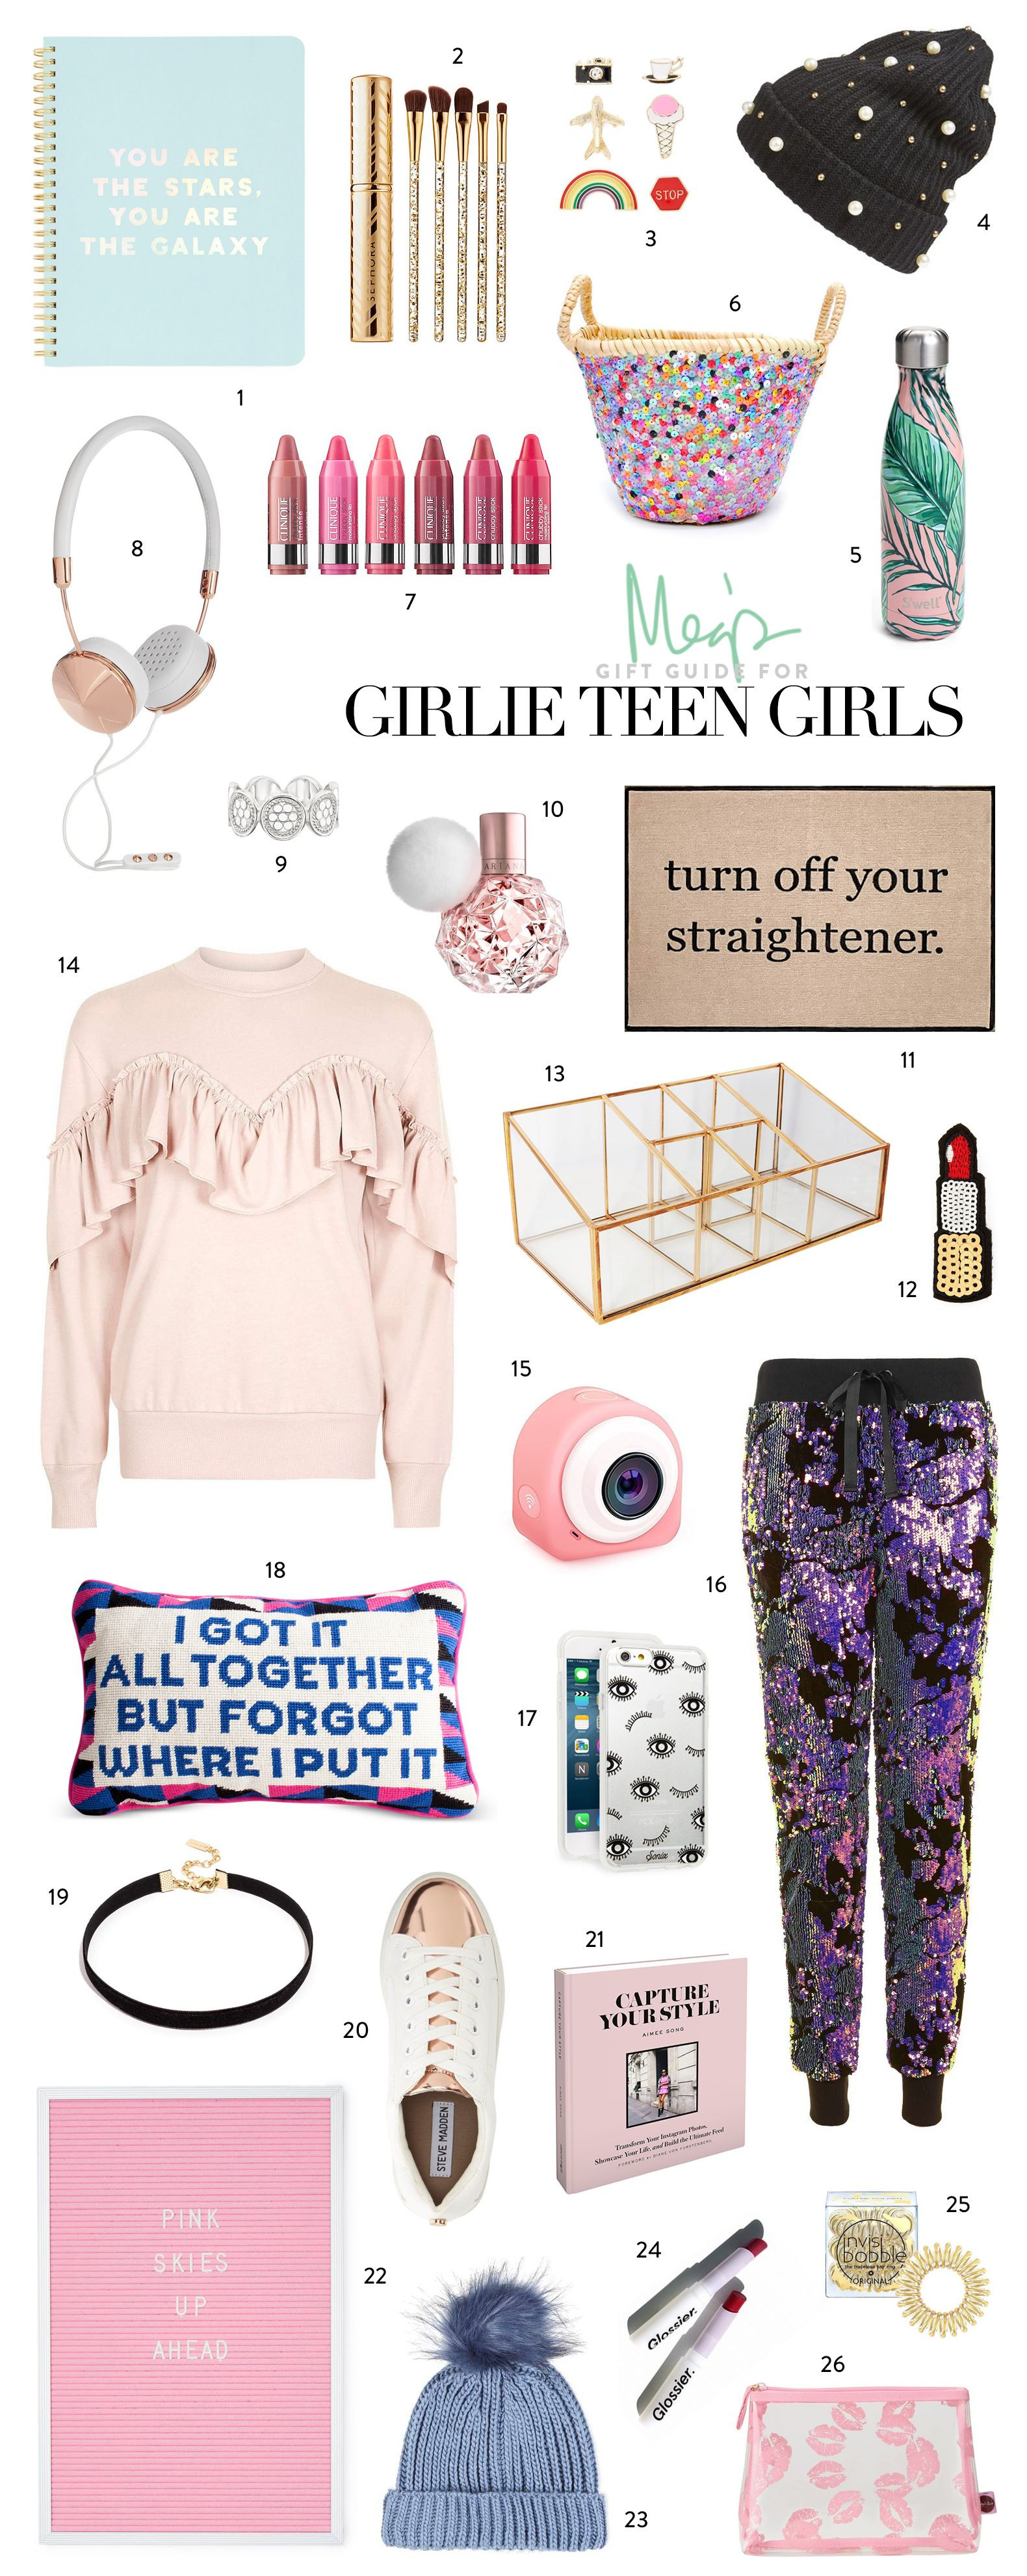 Best ideas about Gift Ideas For Teen Girls . Save or Pin Holiday Gift Guide Girlie Teen Girls Now.